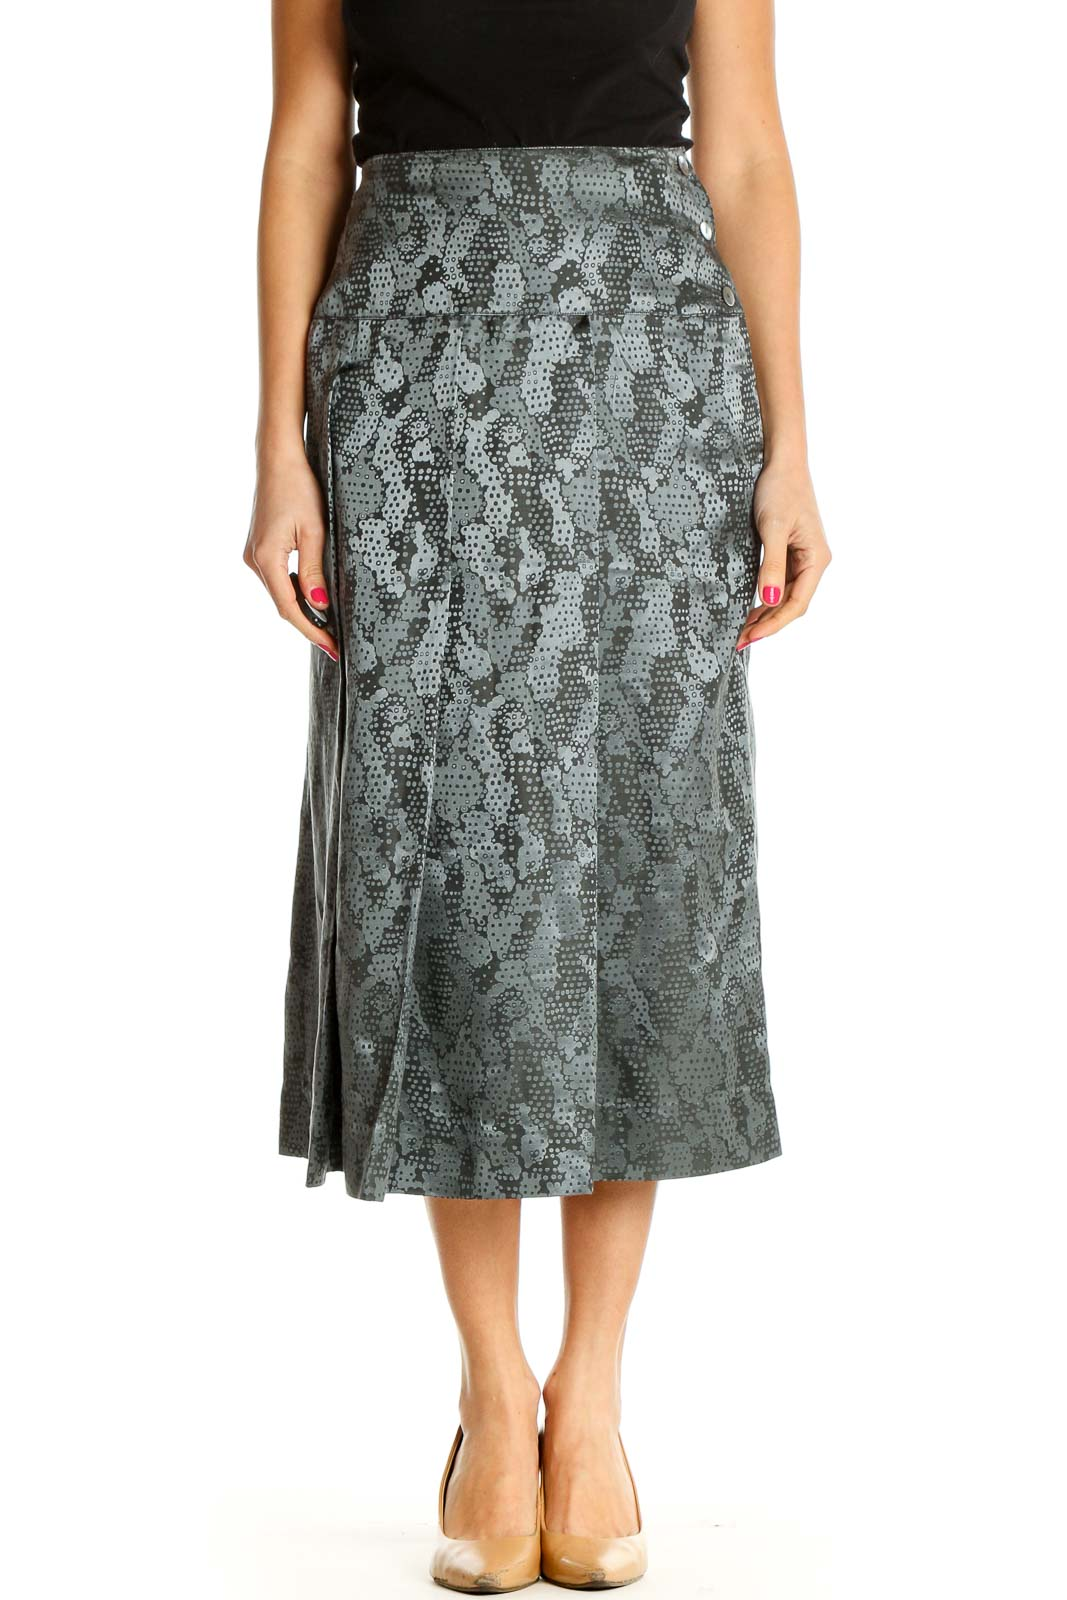 Gray Animal Print Holiday A-Line Skirt Front